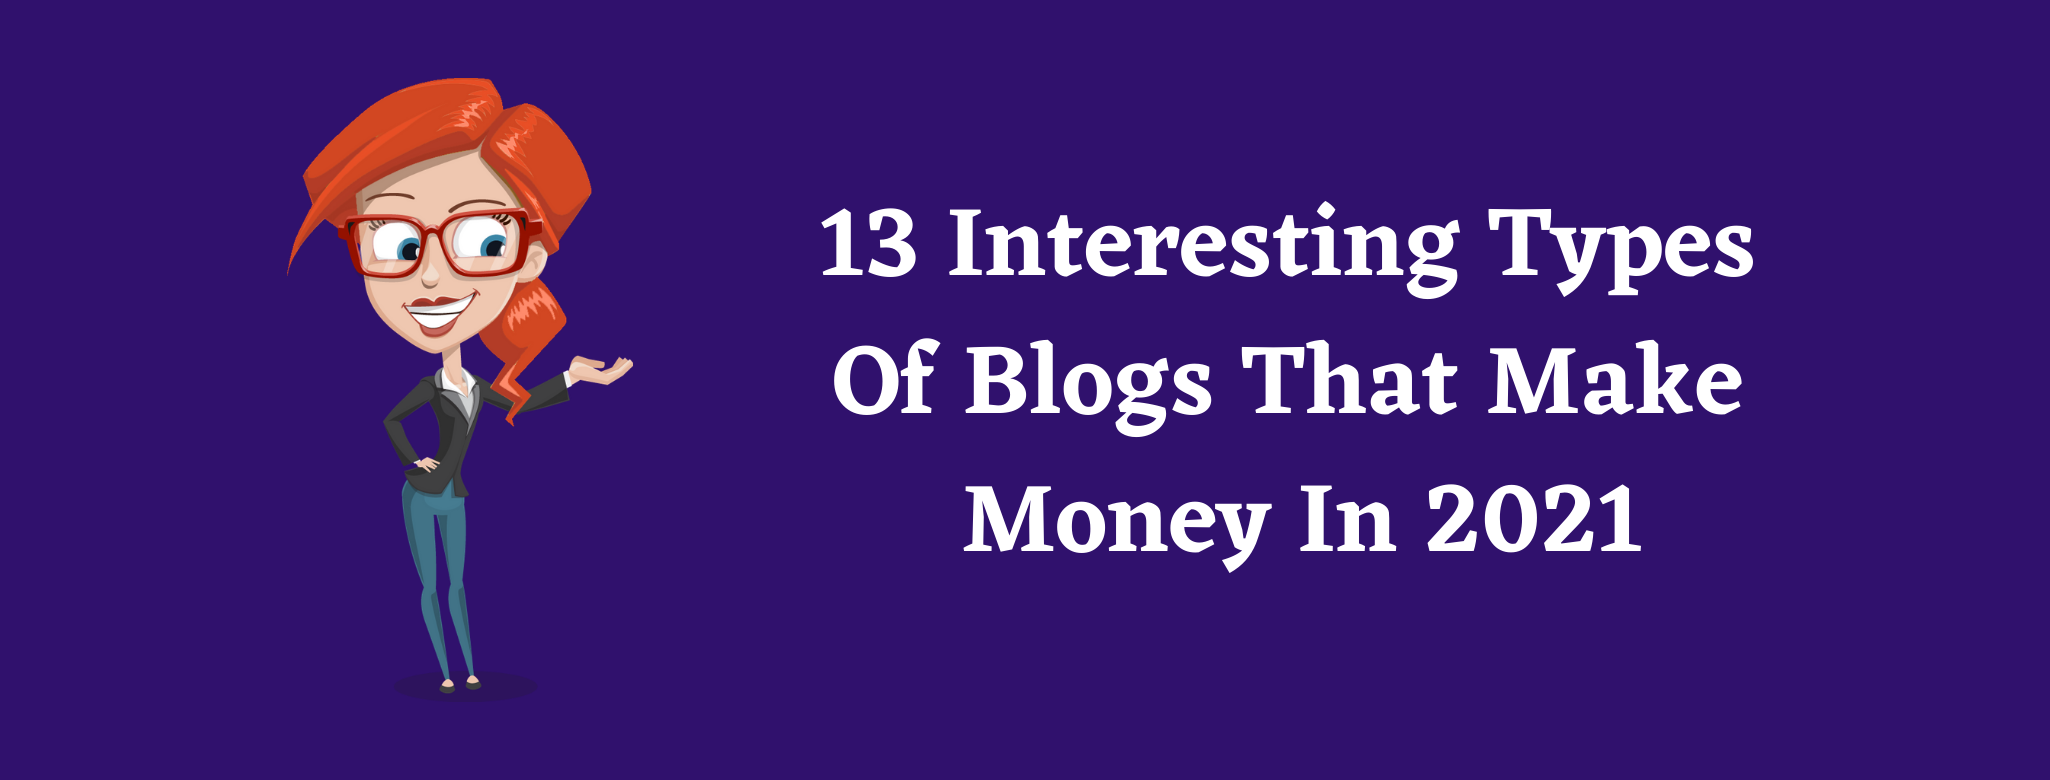 types of blogs that make money in 2021